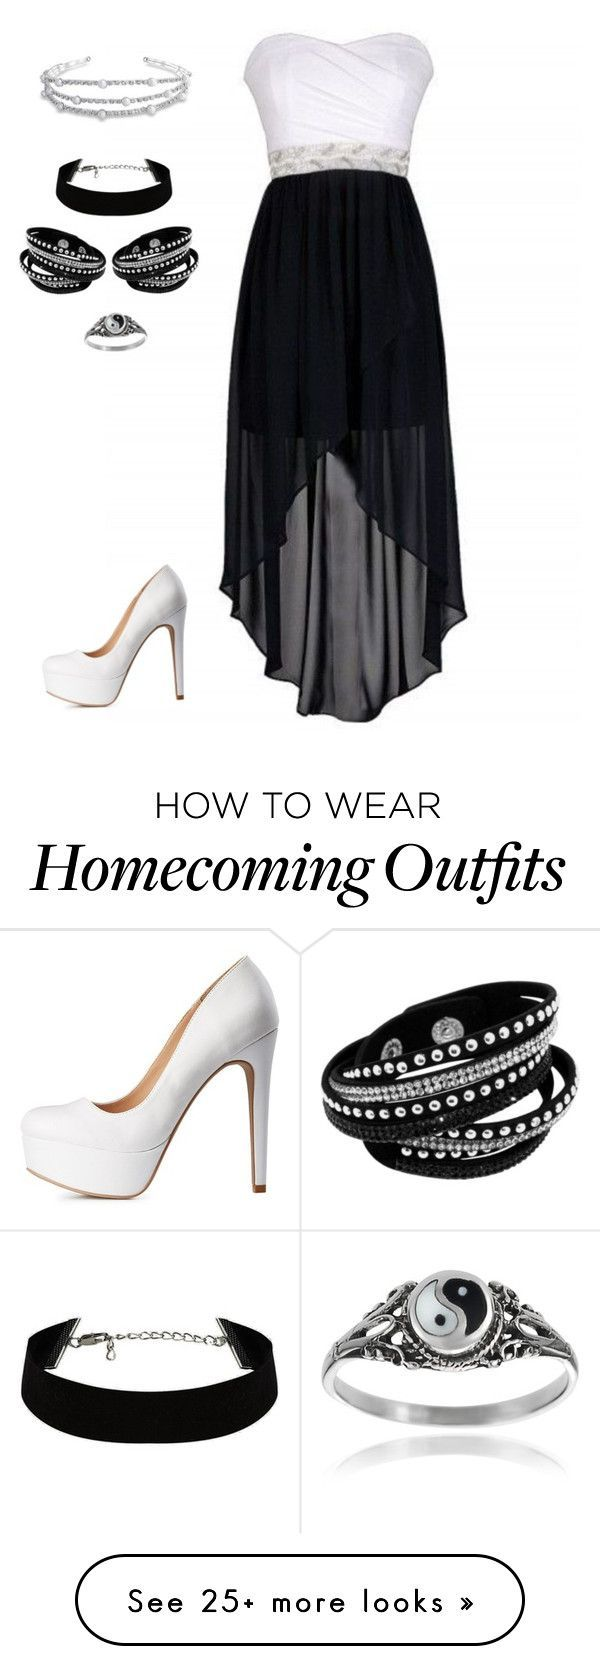 """""""Black & White"""" by lucy-wolf on Polyvore featuring Journee Collection, Charlotte Russe, Bling Jewelry, women's clothing, women, female, woman, misses and juniors"""